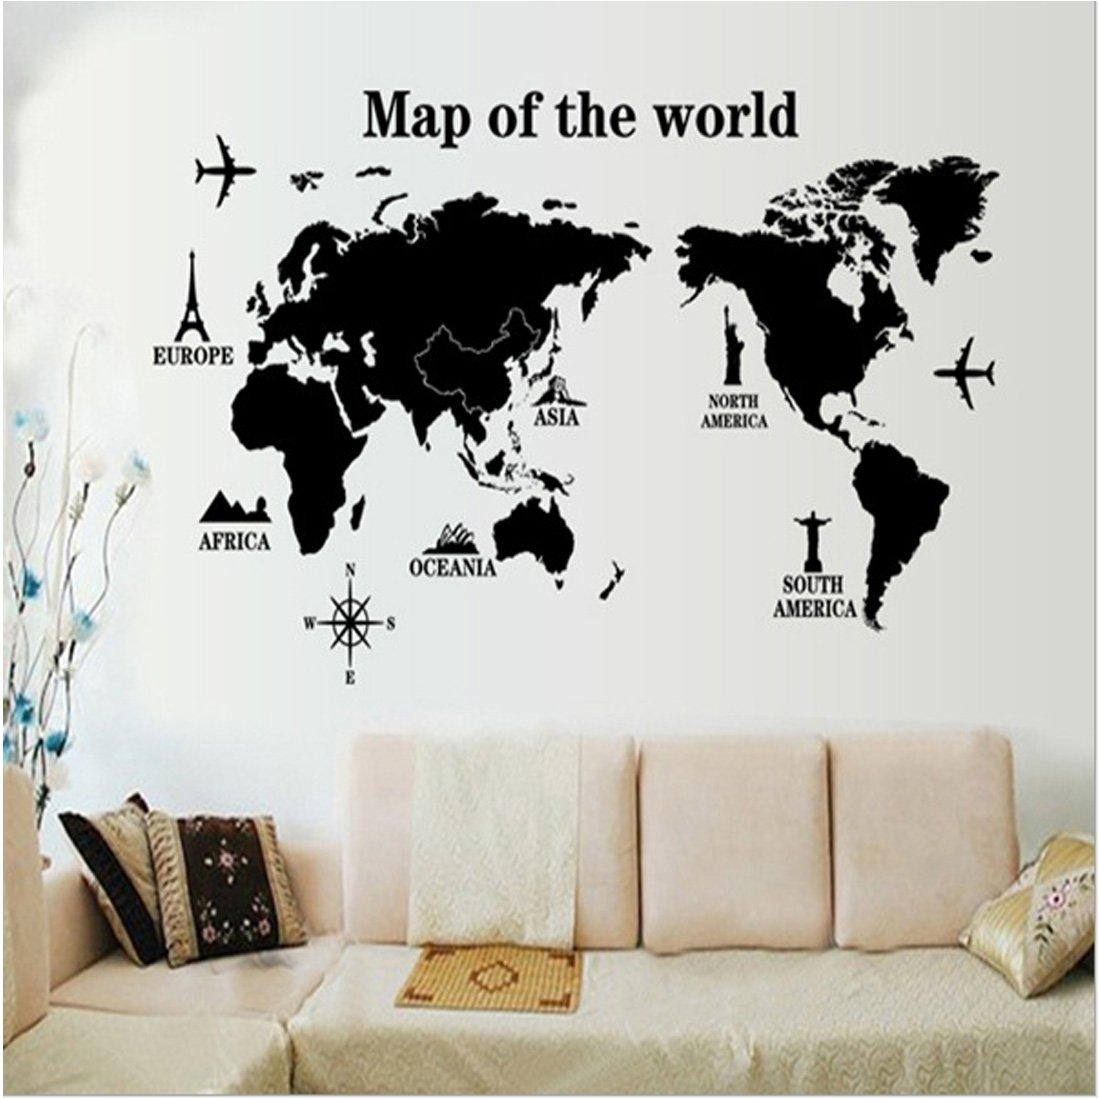 3D World Map Wall Decals Stickers Home Living Room Decoration Diy Throughout Wall Art Stickers World Map (Photo 11 of 20)